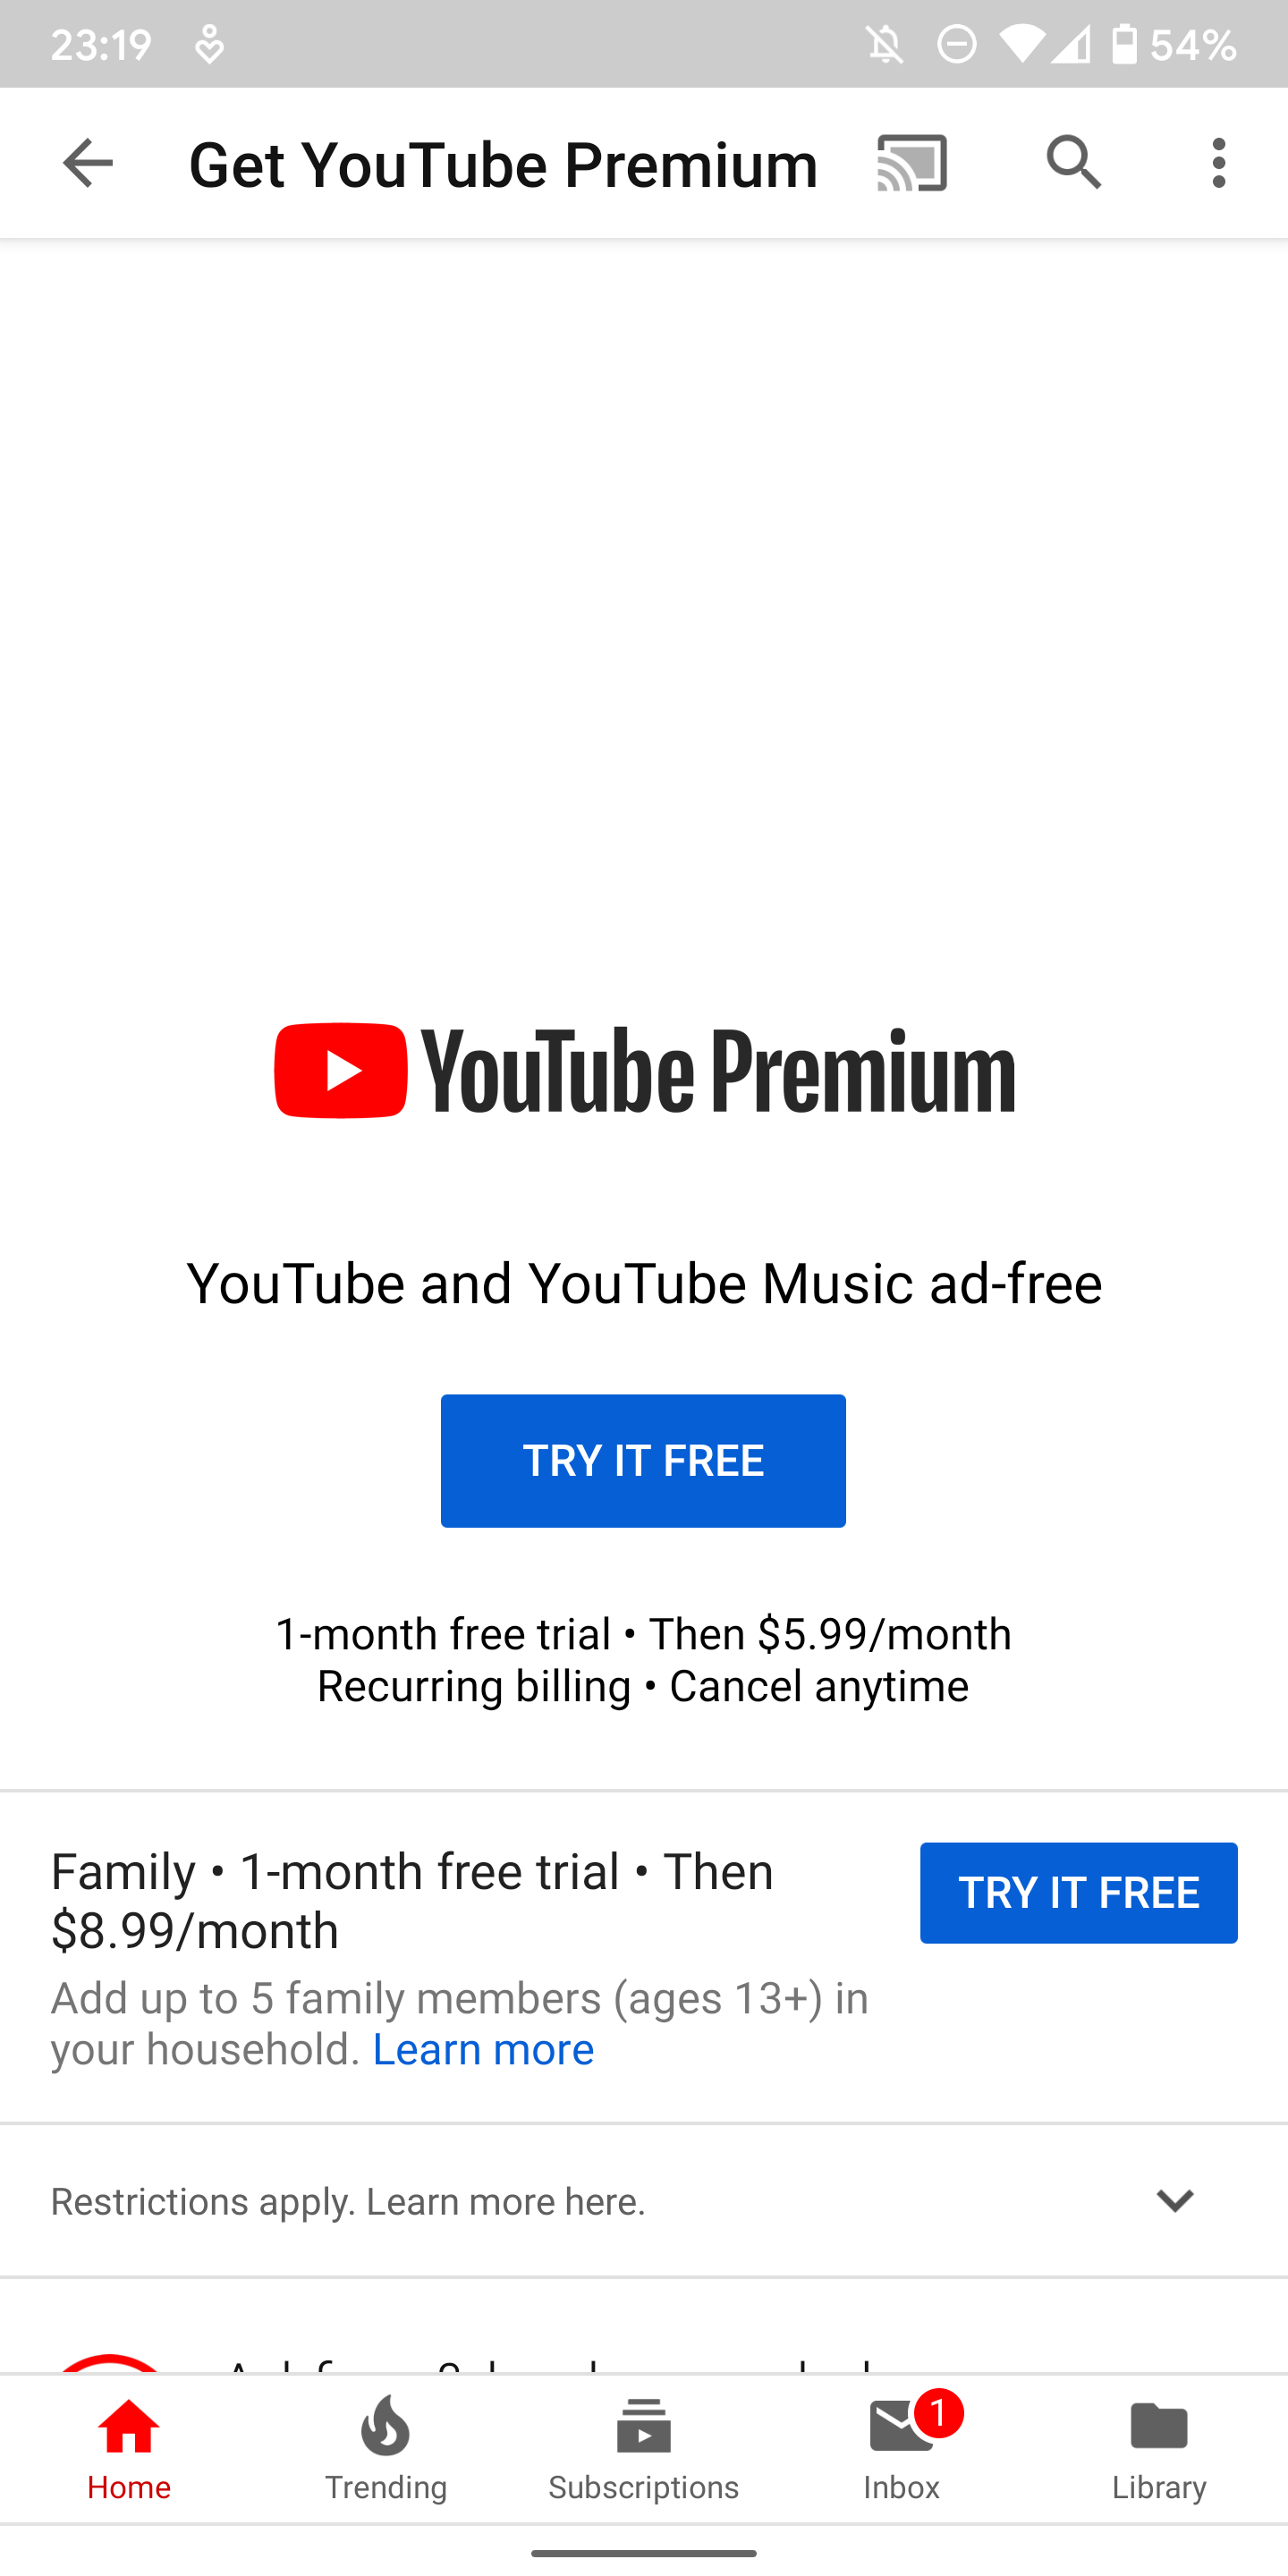 Youtube Premium And Music Launch In 8 New Countries In The Middle East